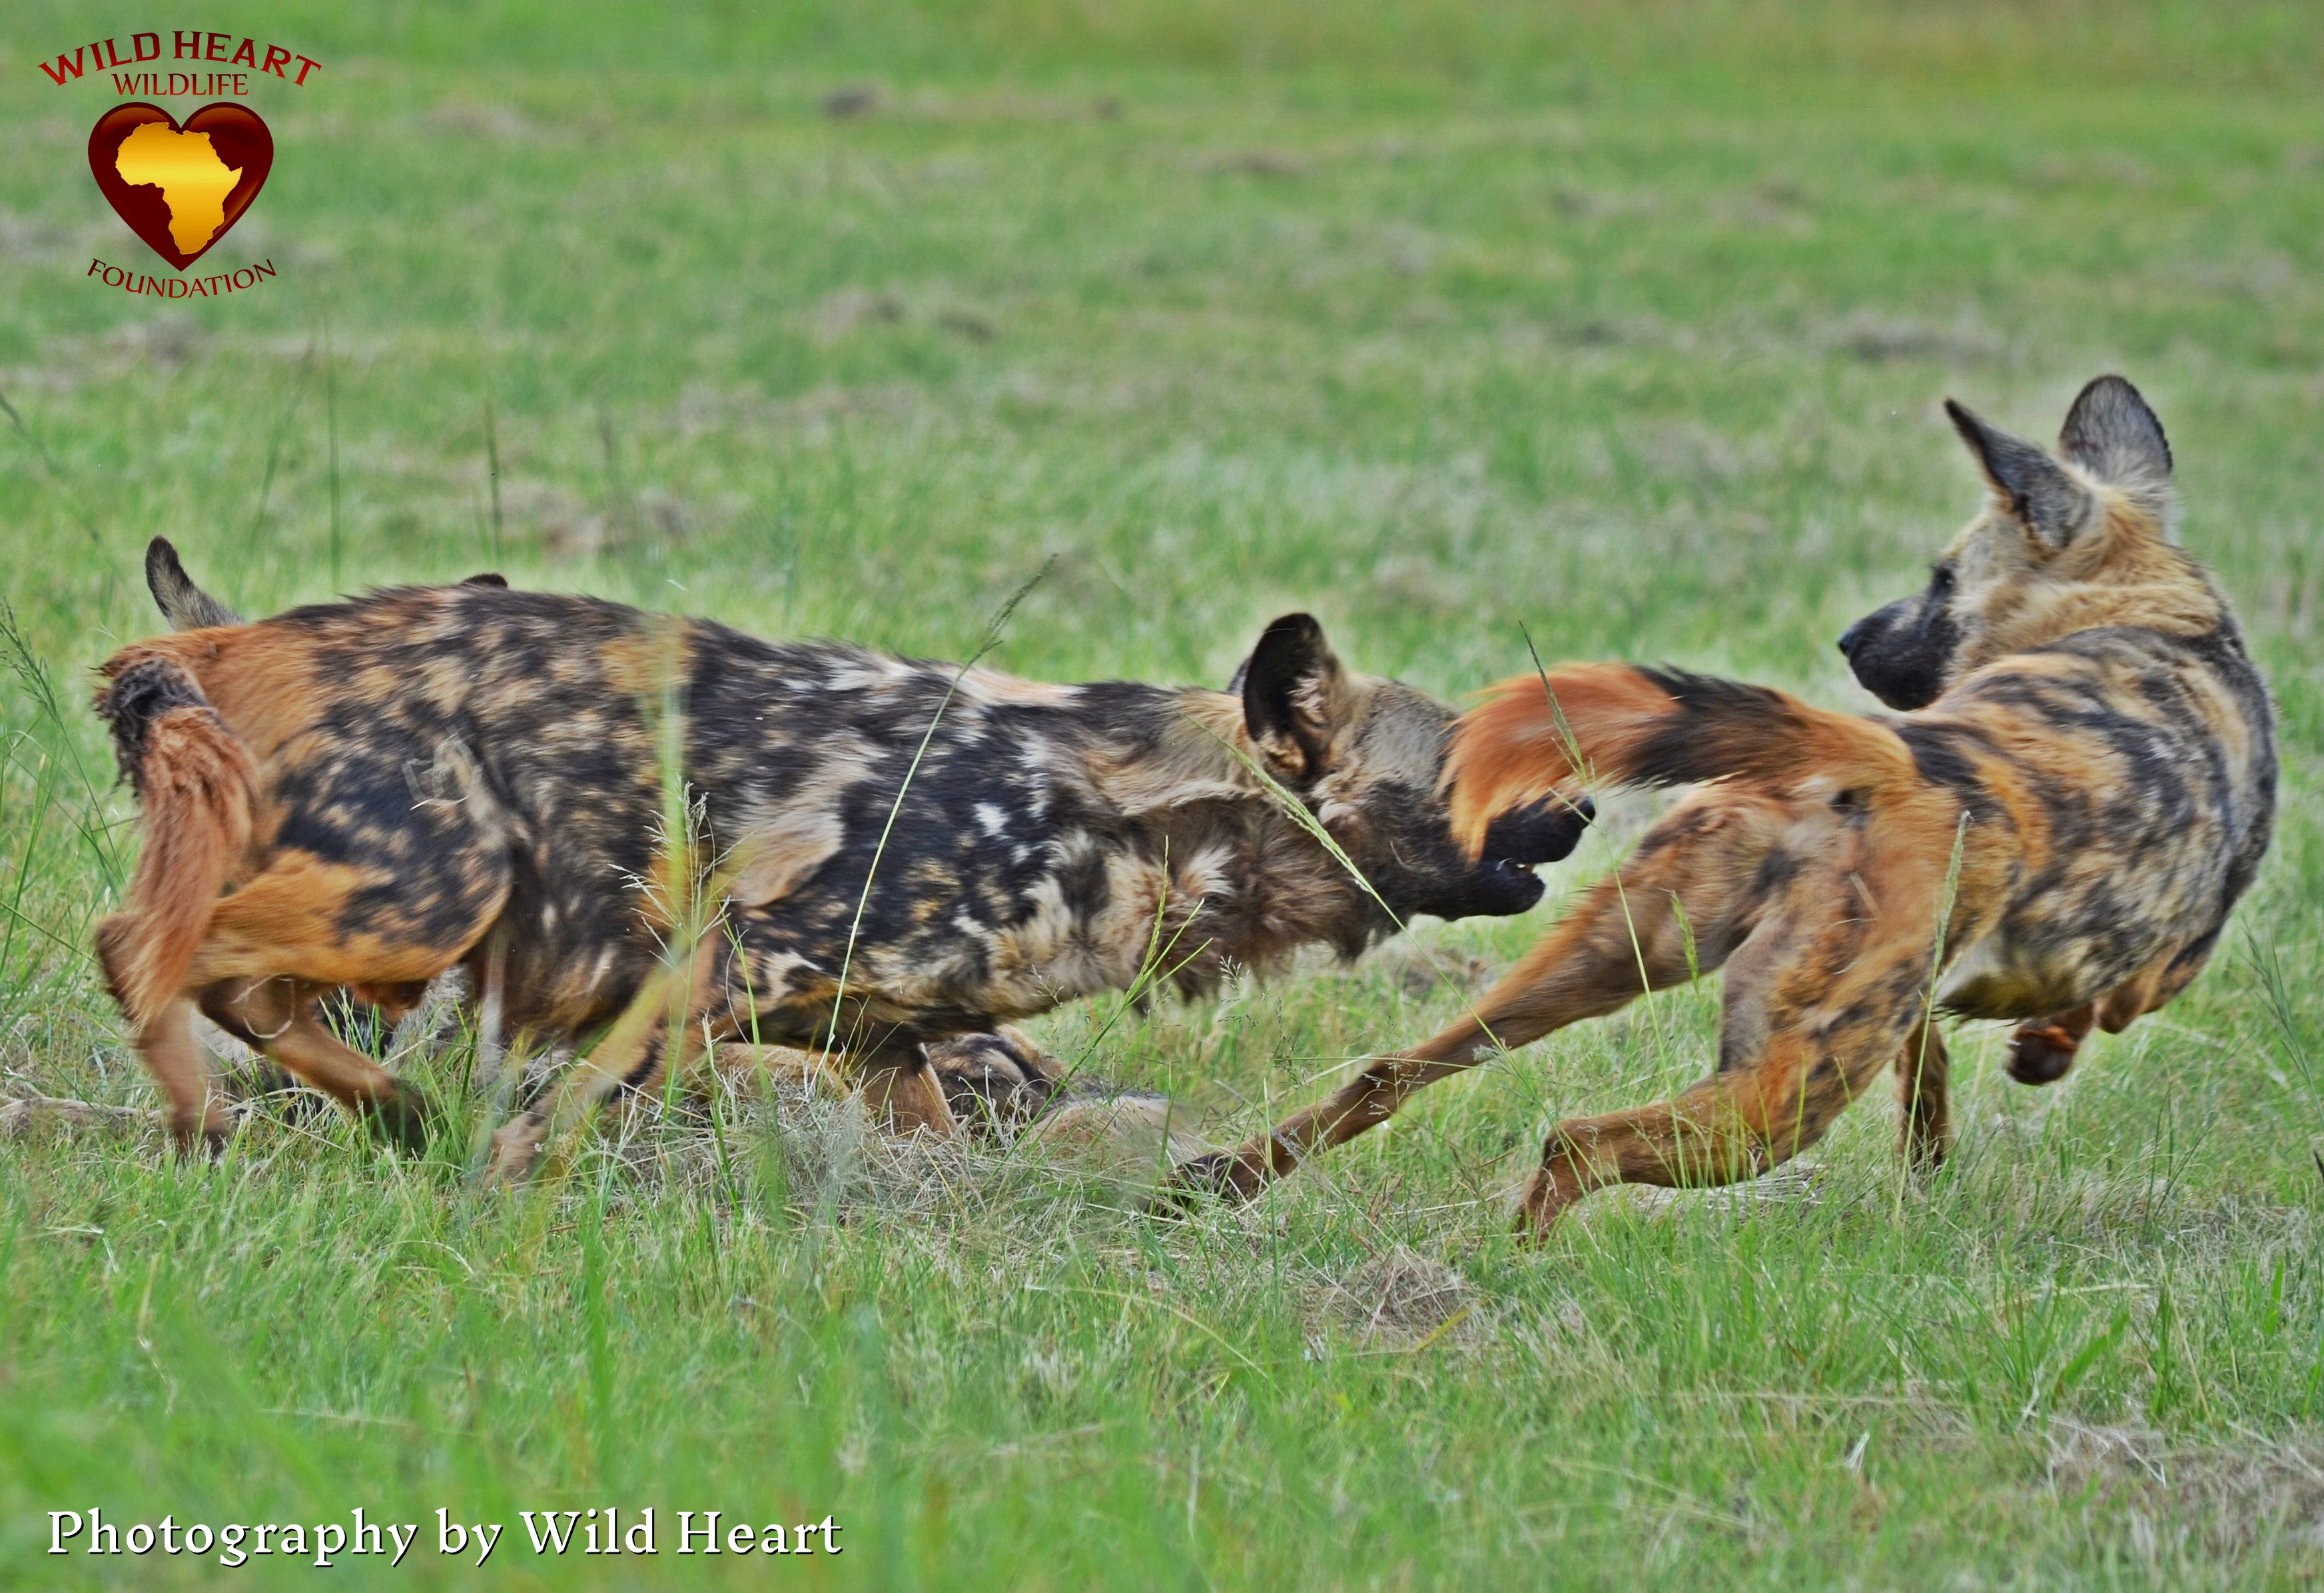 Some San Hunters Will Smear African Wild Dog Bodily Fluids On Their Feet Before A Hunt Believing That Doing So Gift Them With The Animals Boldness